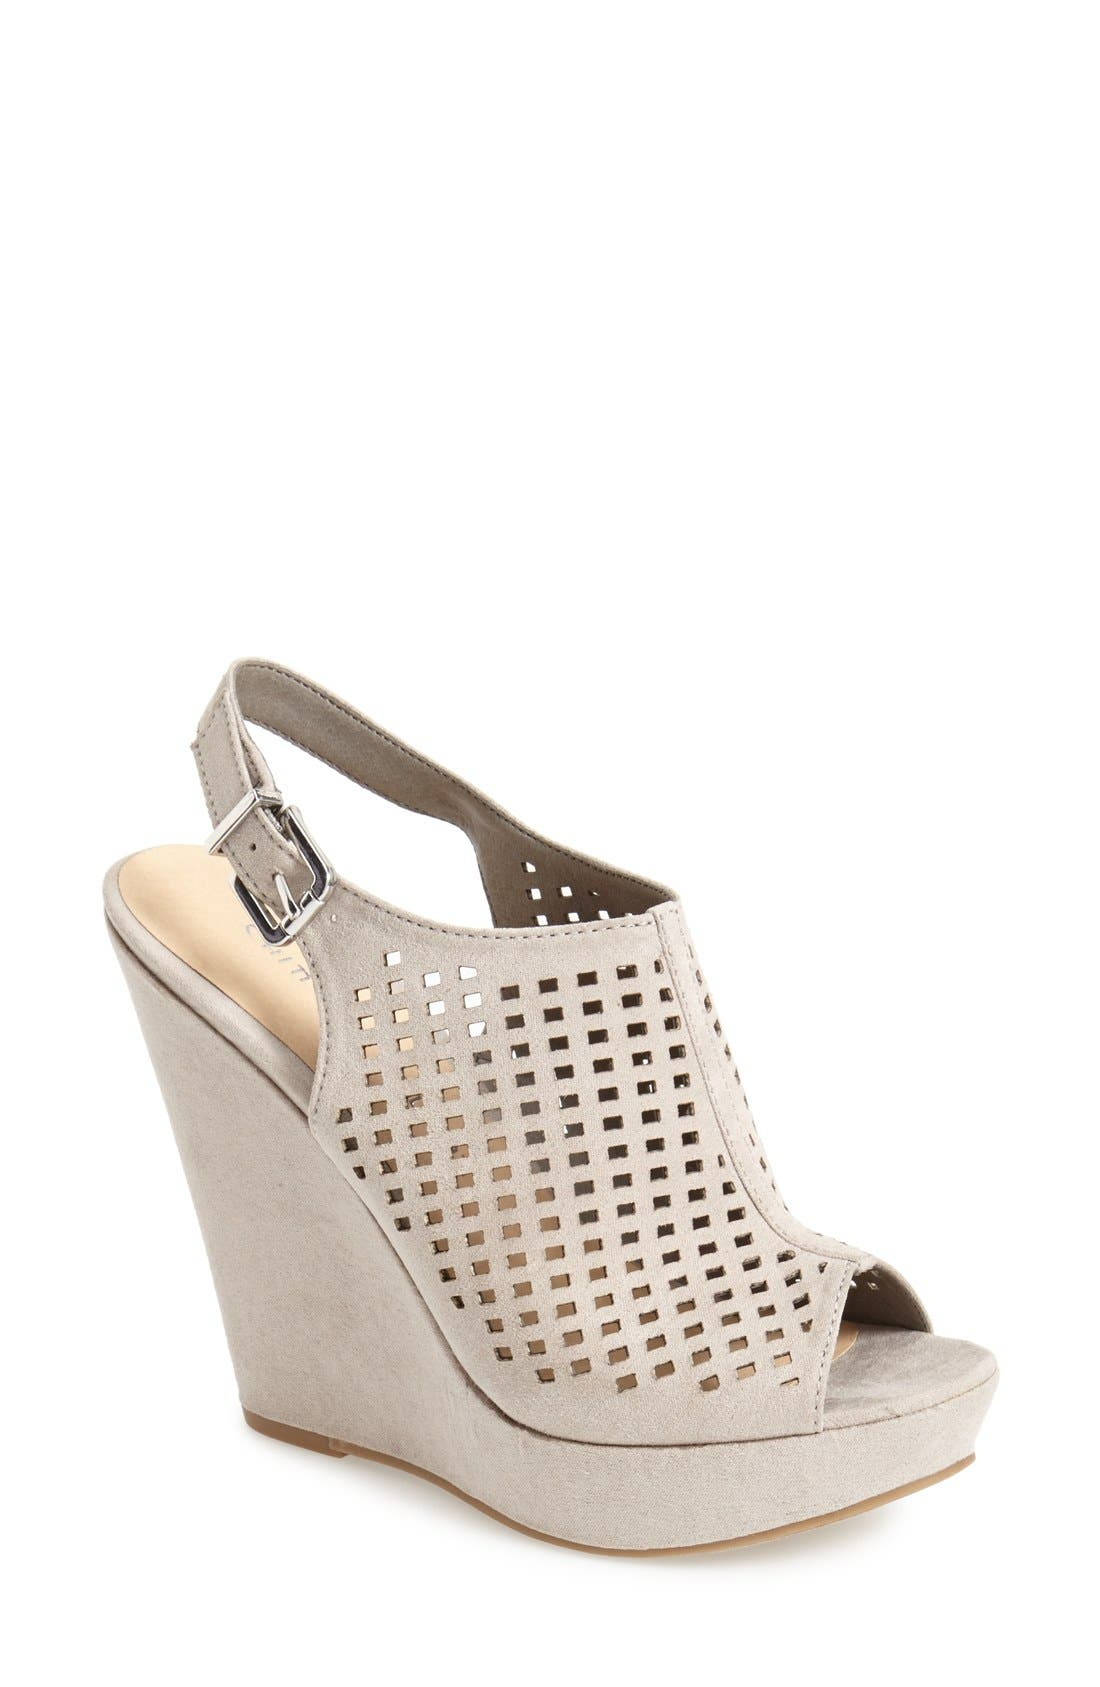 Alternate Image 1 Selected - Chinese Laundry 'Meet Up' Slingback Wedge Peep Toe Sandal (Women)